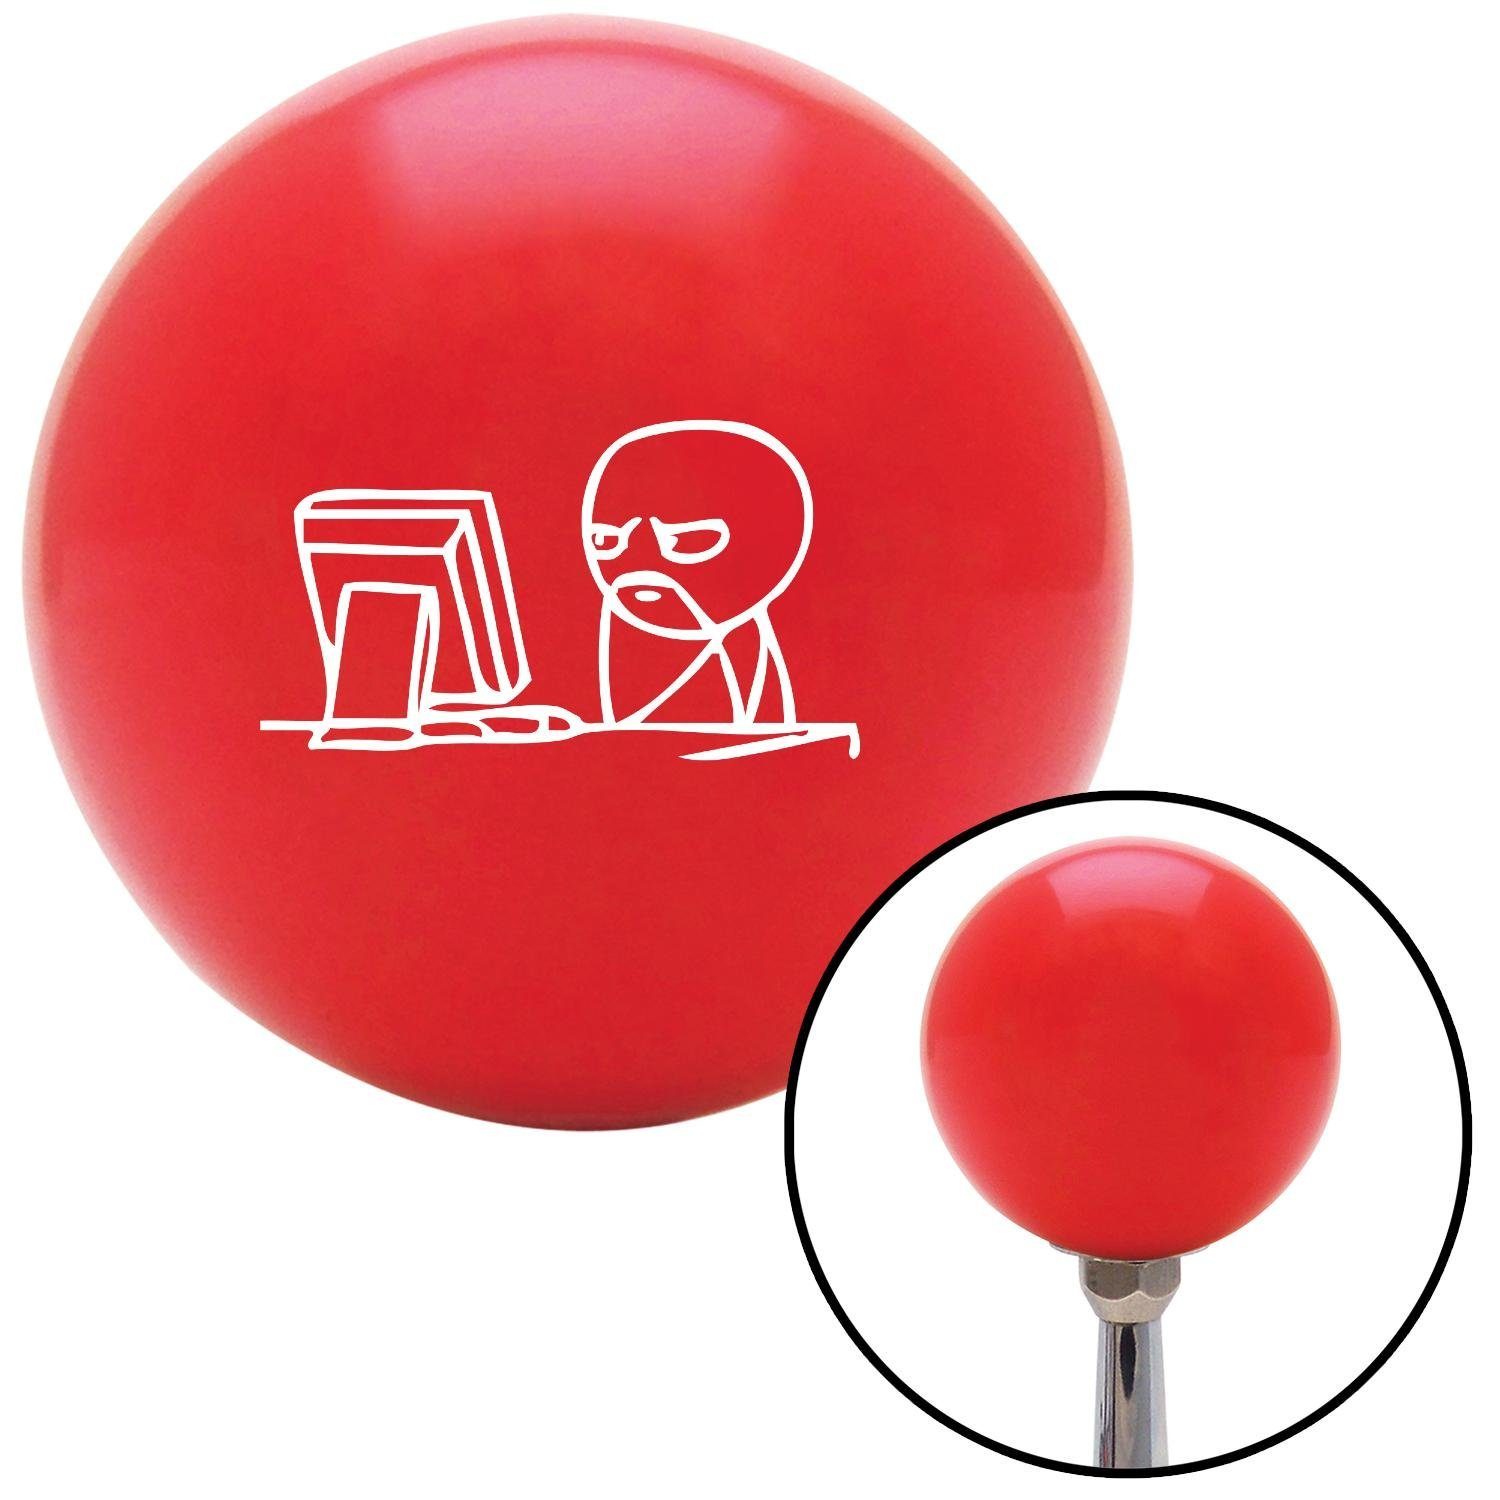 American Shifter 97224 Red Shift Knob with M16 x 1.5 Insert White Soon Computer